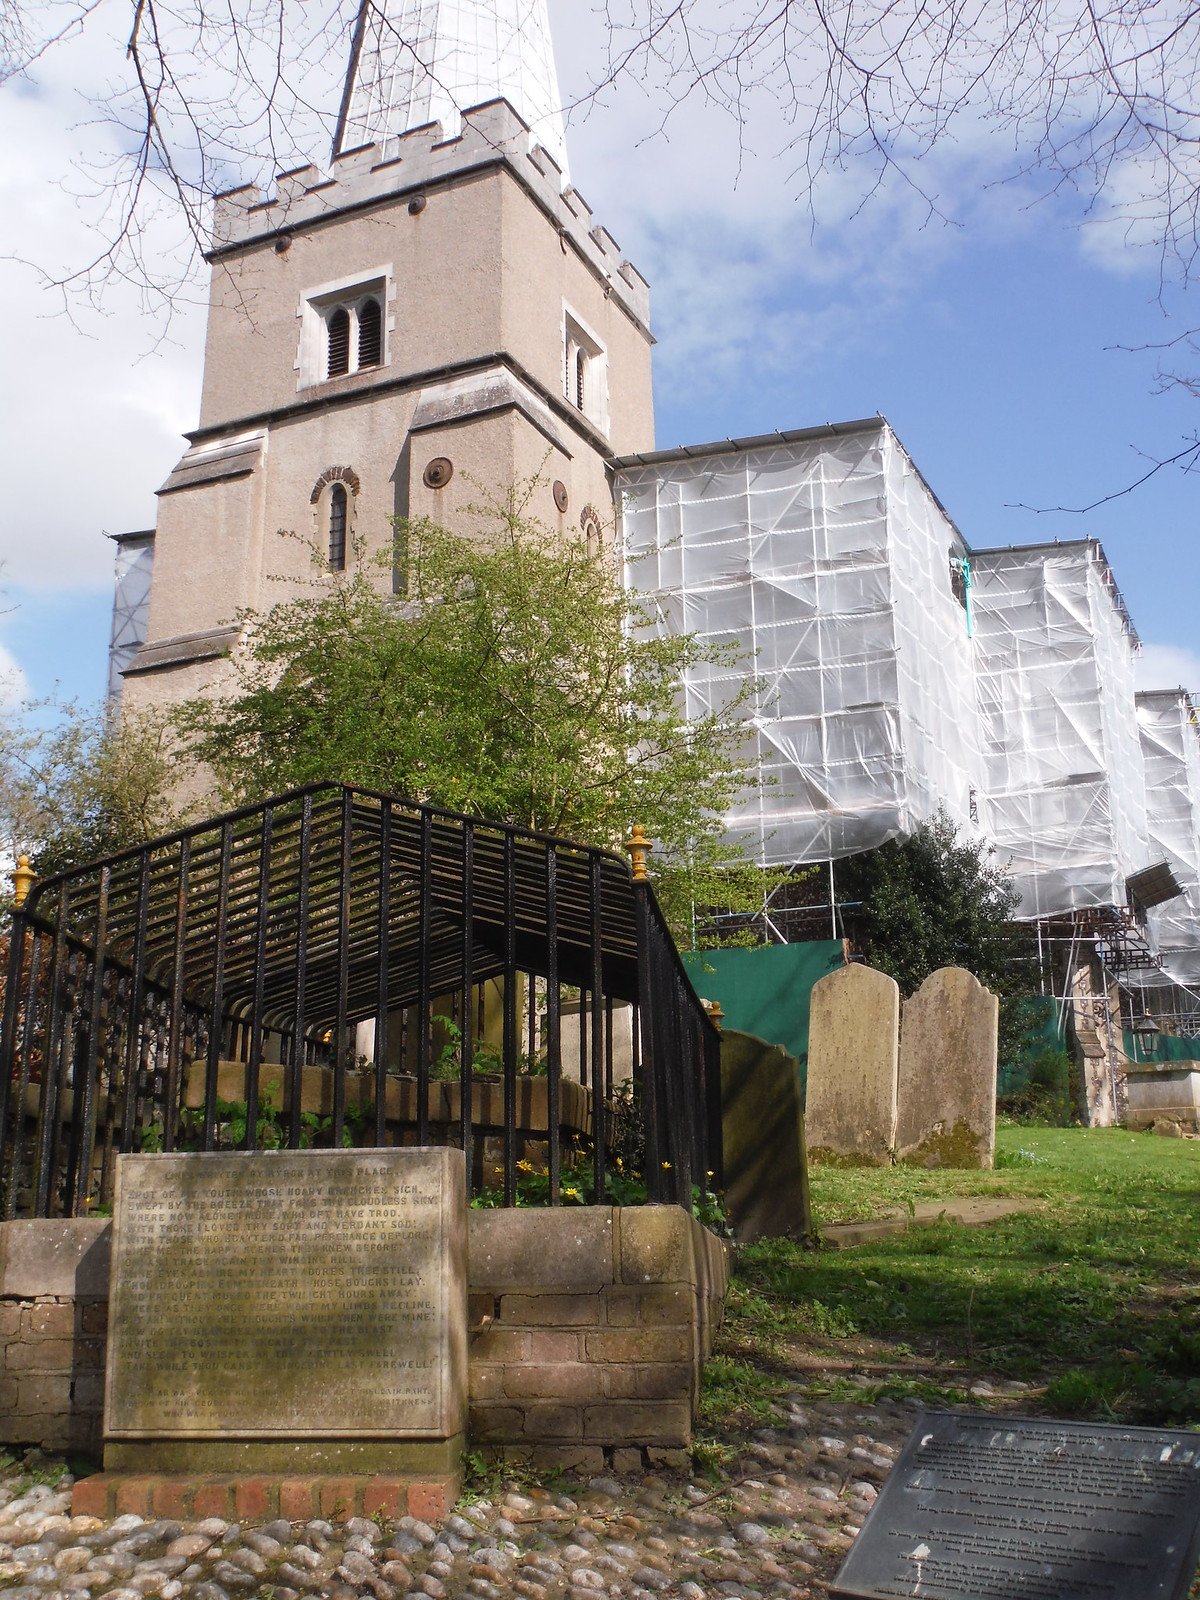 Lord Byron's Favourite Spot with St. Mary on the Hill SWC Short Walk 40 - Harrow-on-the-Hill (South Kenton or Northwick Park to Harrow-on-the-Hill)